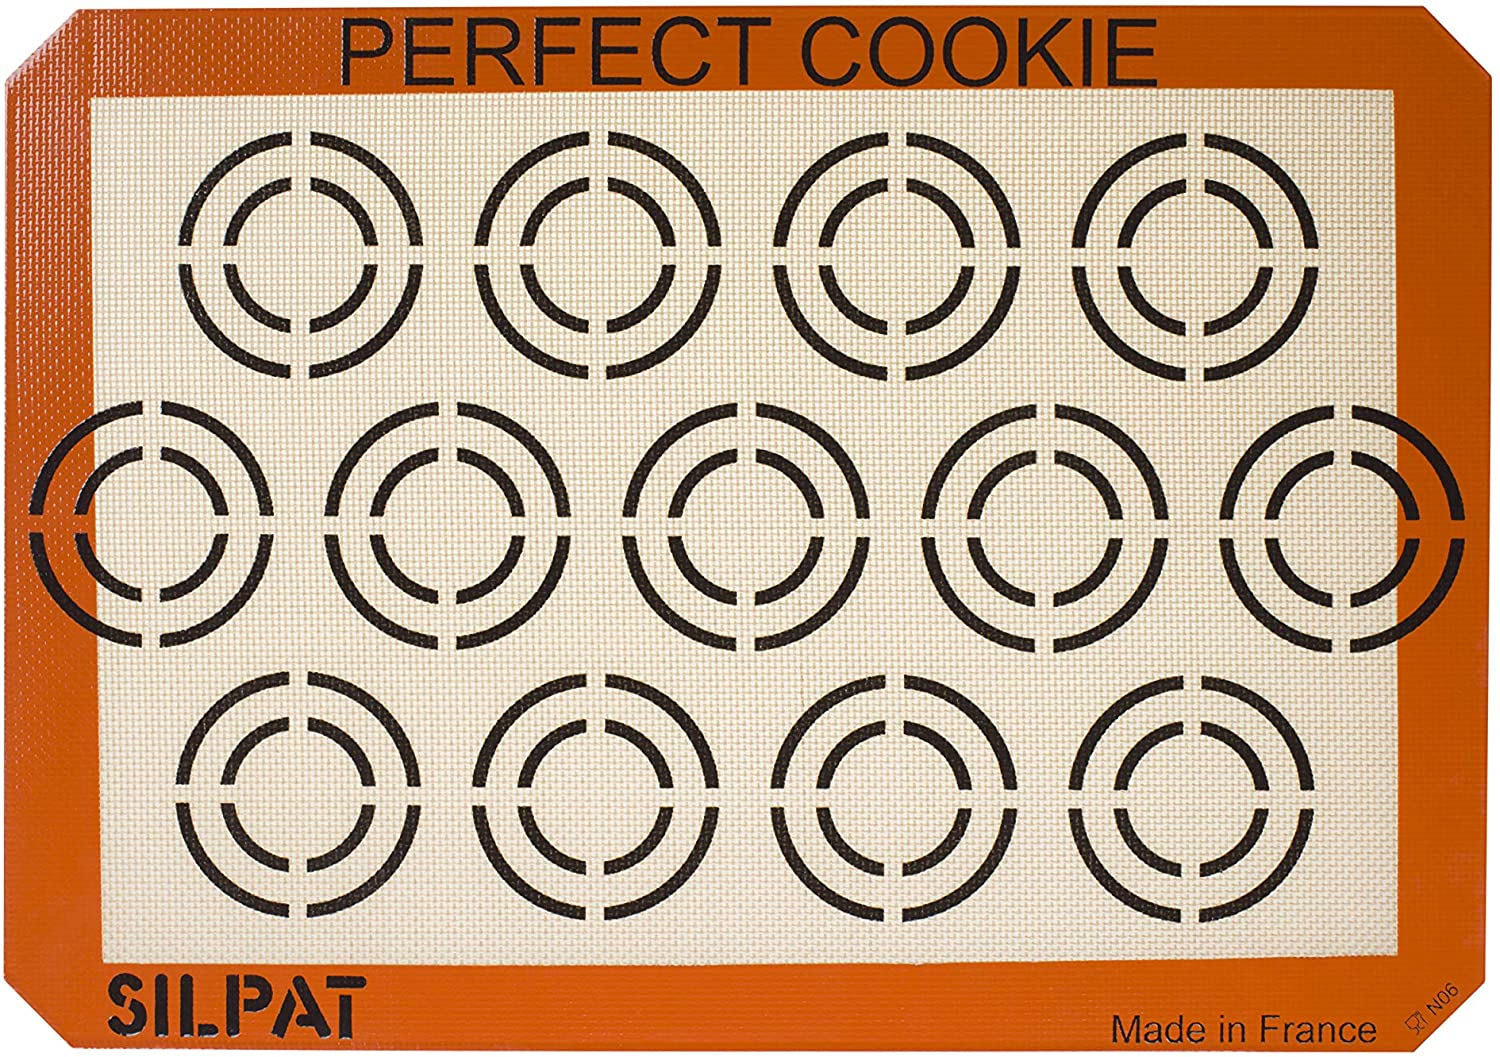 "Silpat Perfect Cookie Non-Stick Silicone Baking Mat, 11-5/8"" x 16-1/2"": Kitchen & Dining"